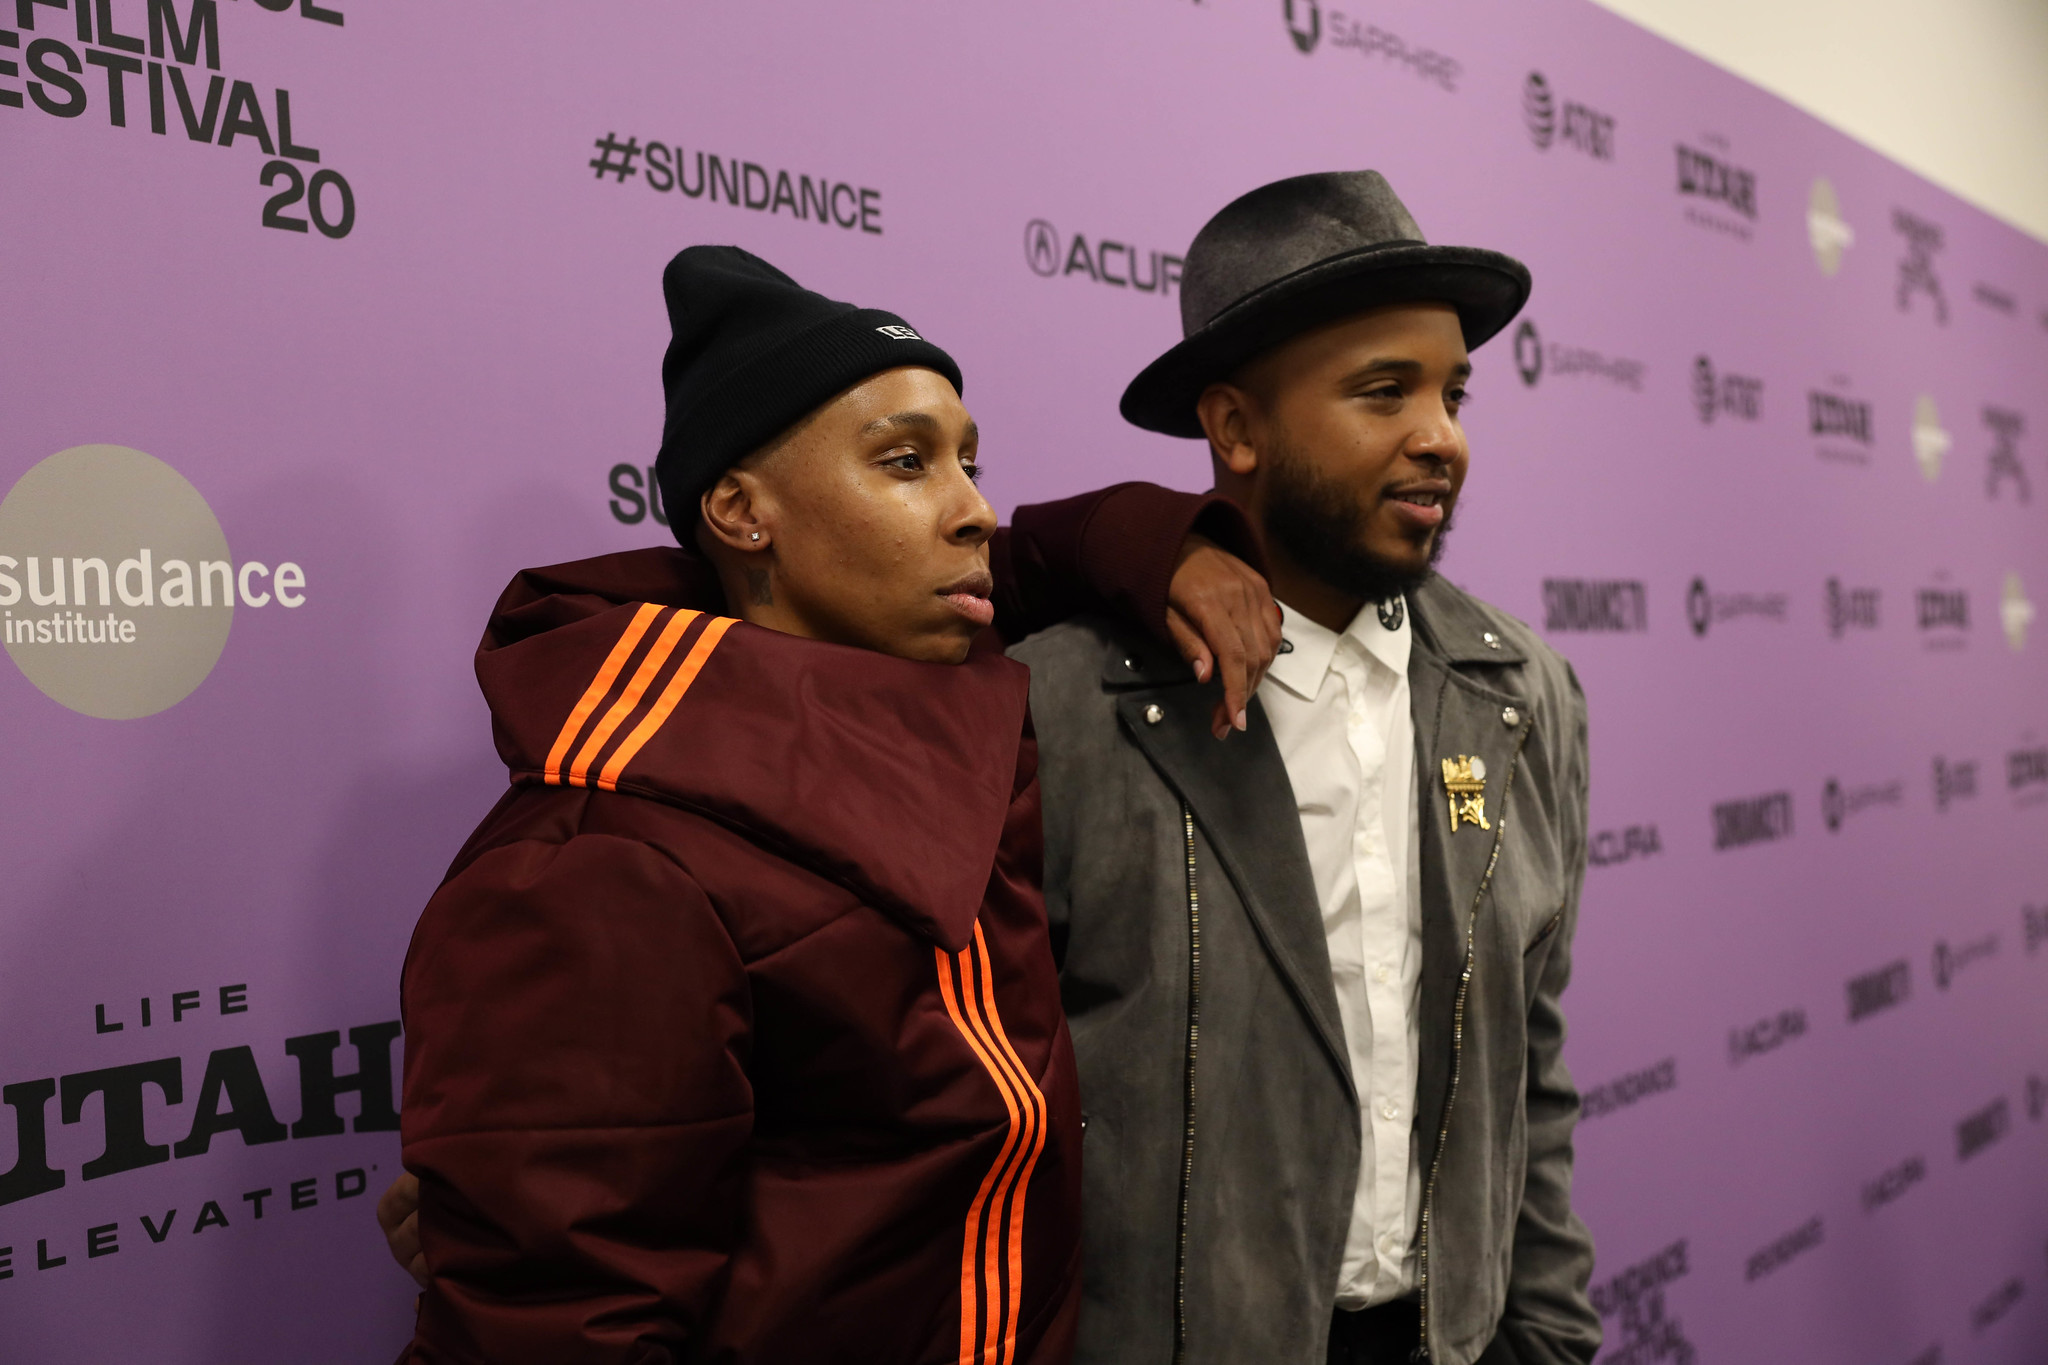 What we discovered at the 2020 Sundance Film Festival